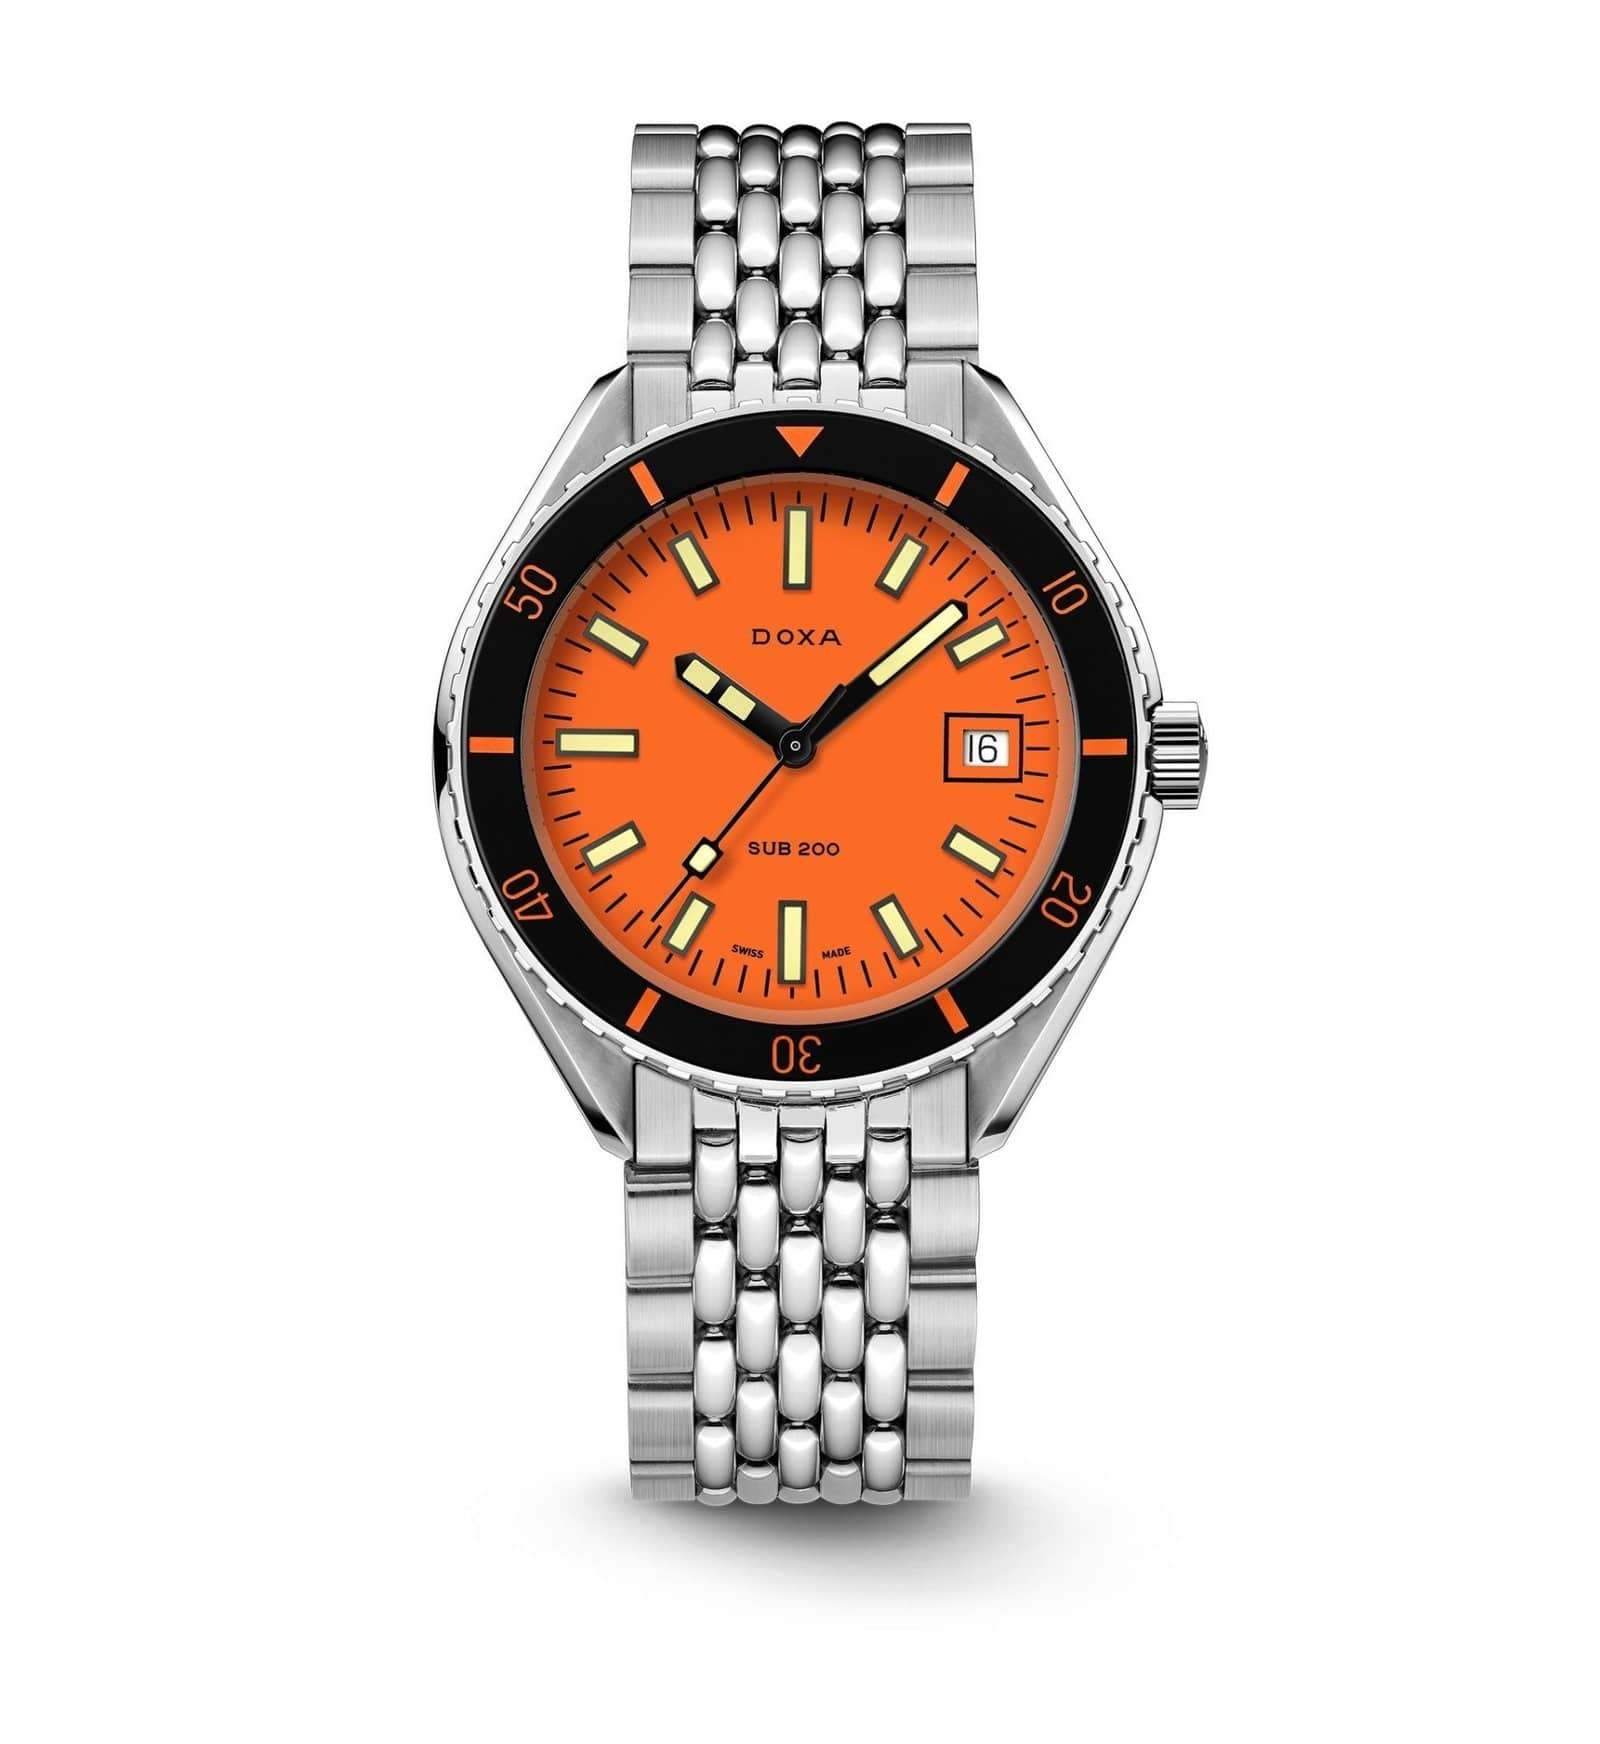 Image of the Doxa Sub 200 watch with metal strap and orange interior